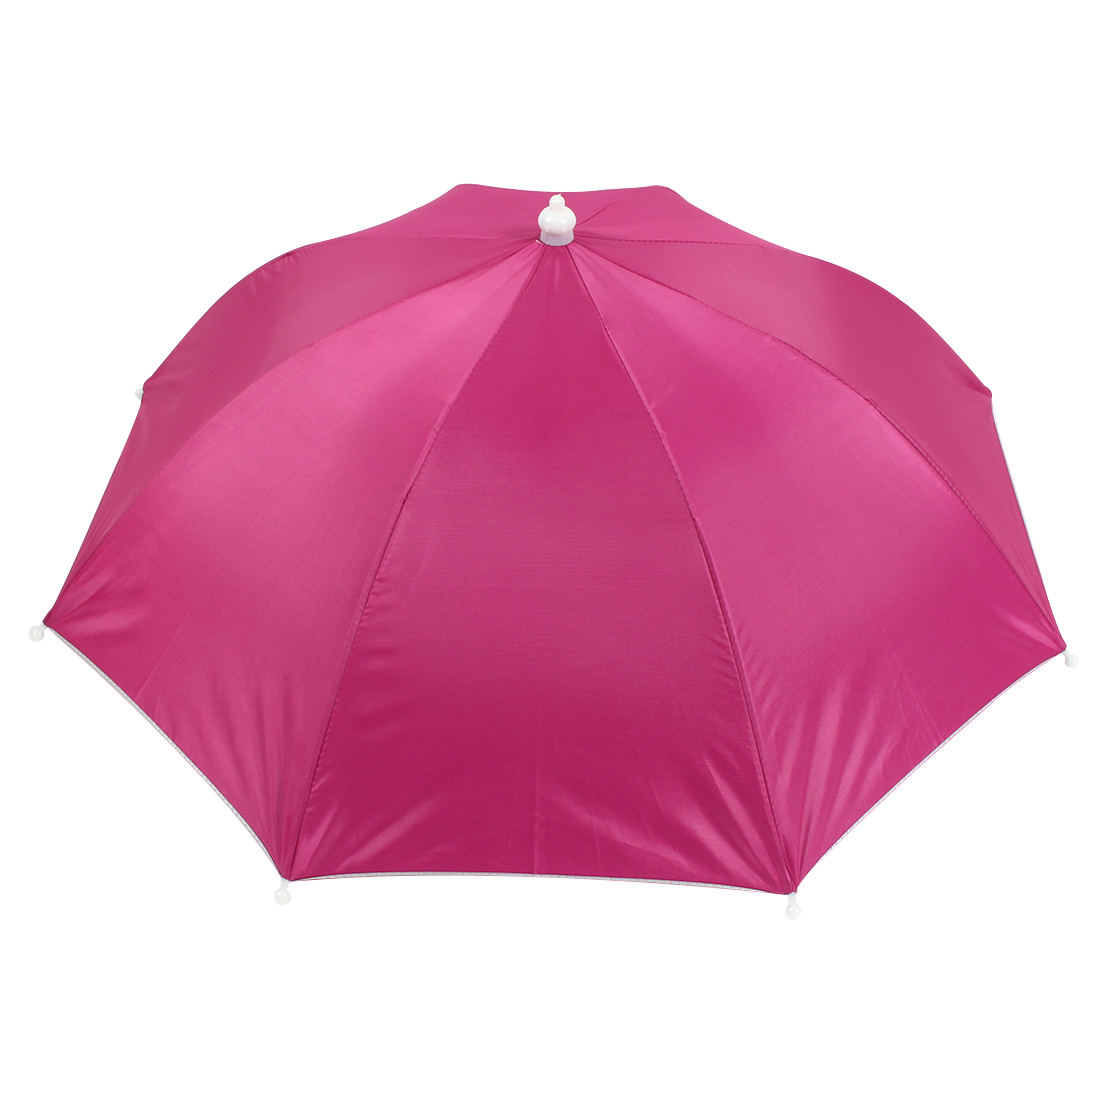 Fuchsia Polyester 8 Ribs Fishing Golfing Sun Rain Umbrella Hat Cap